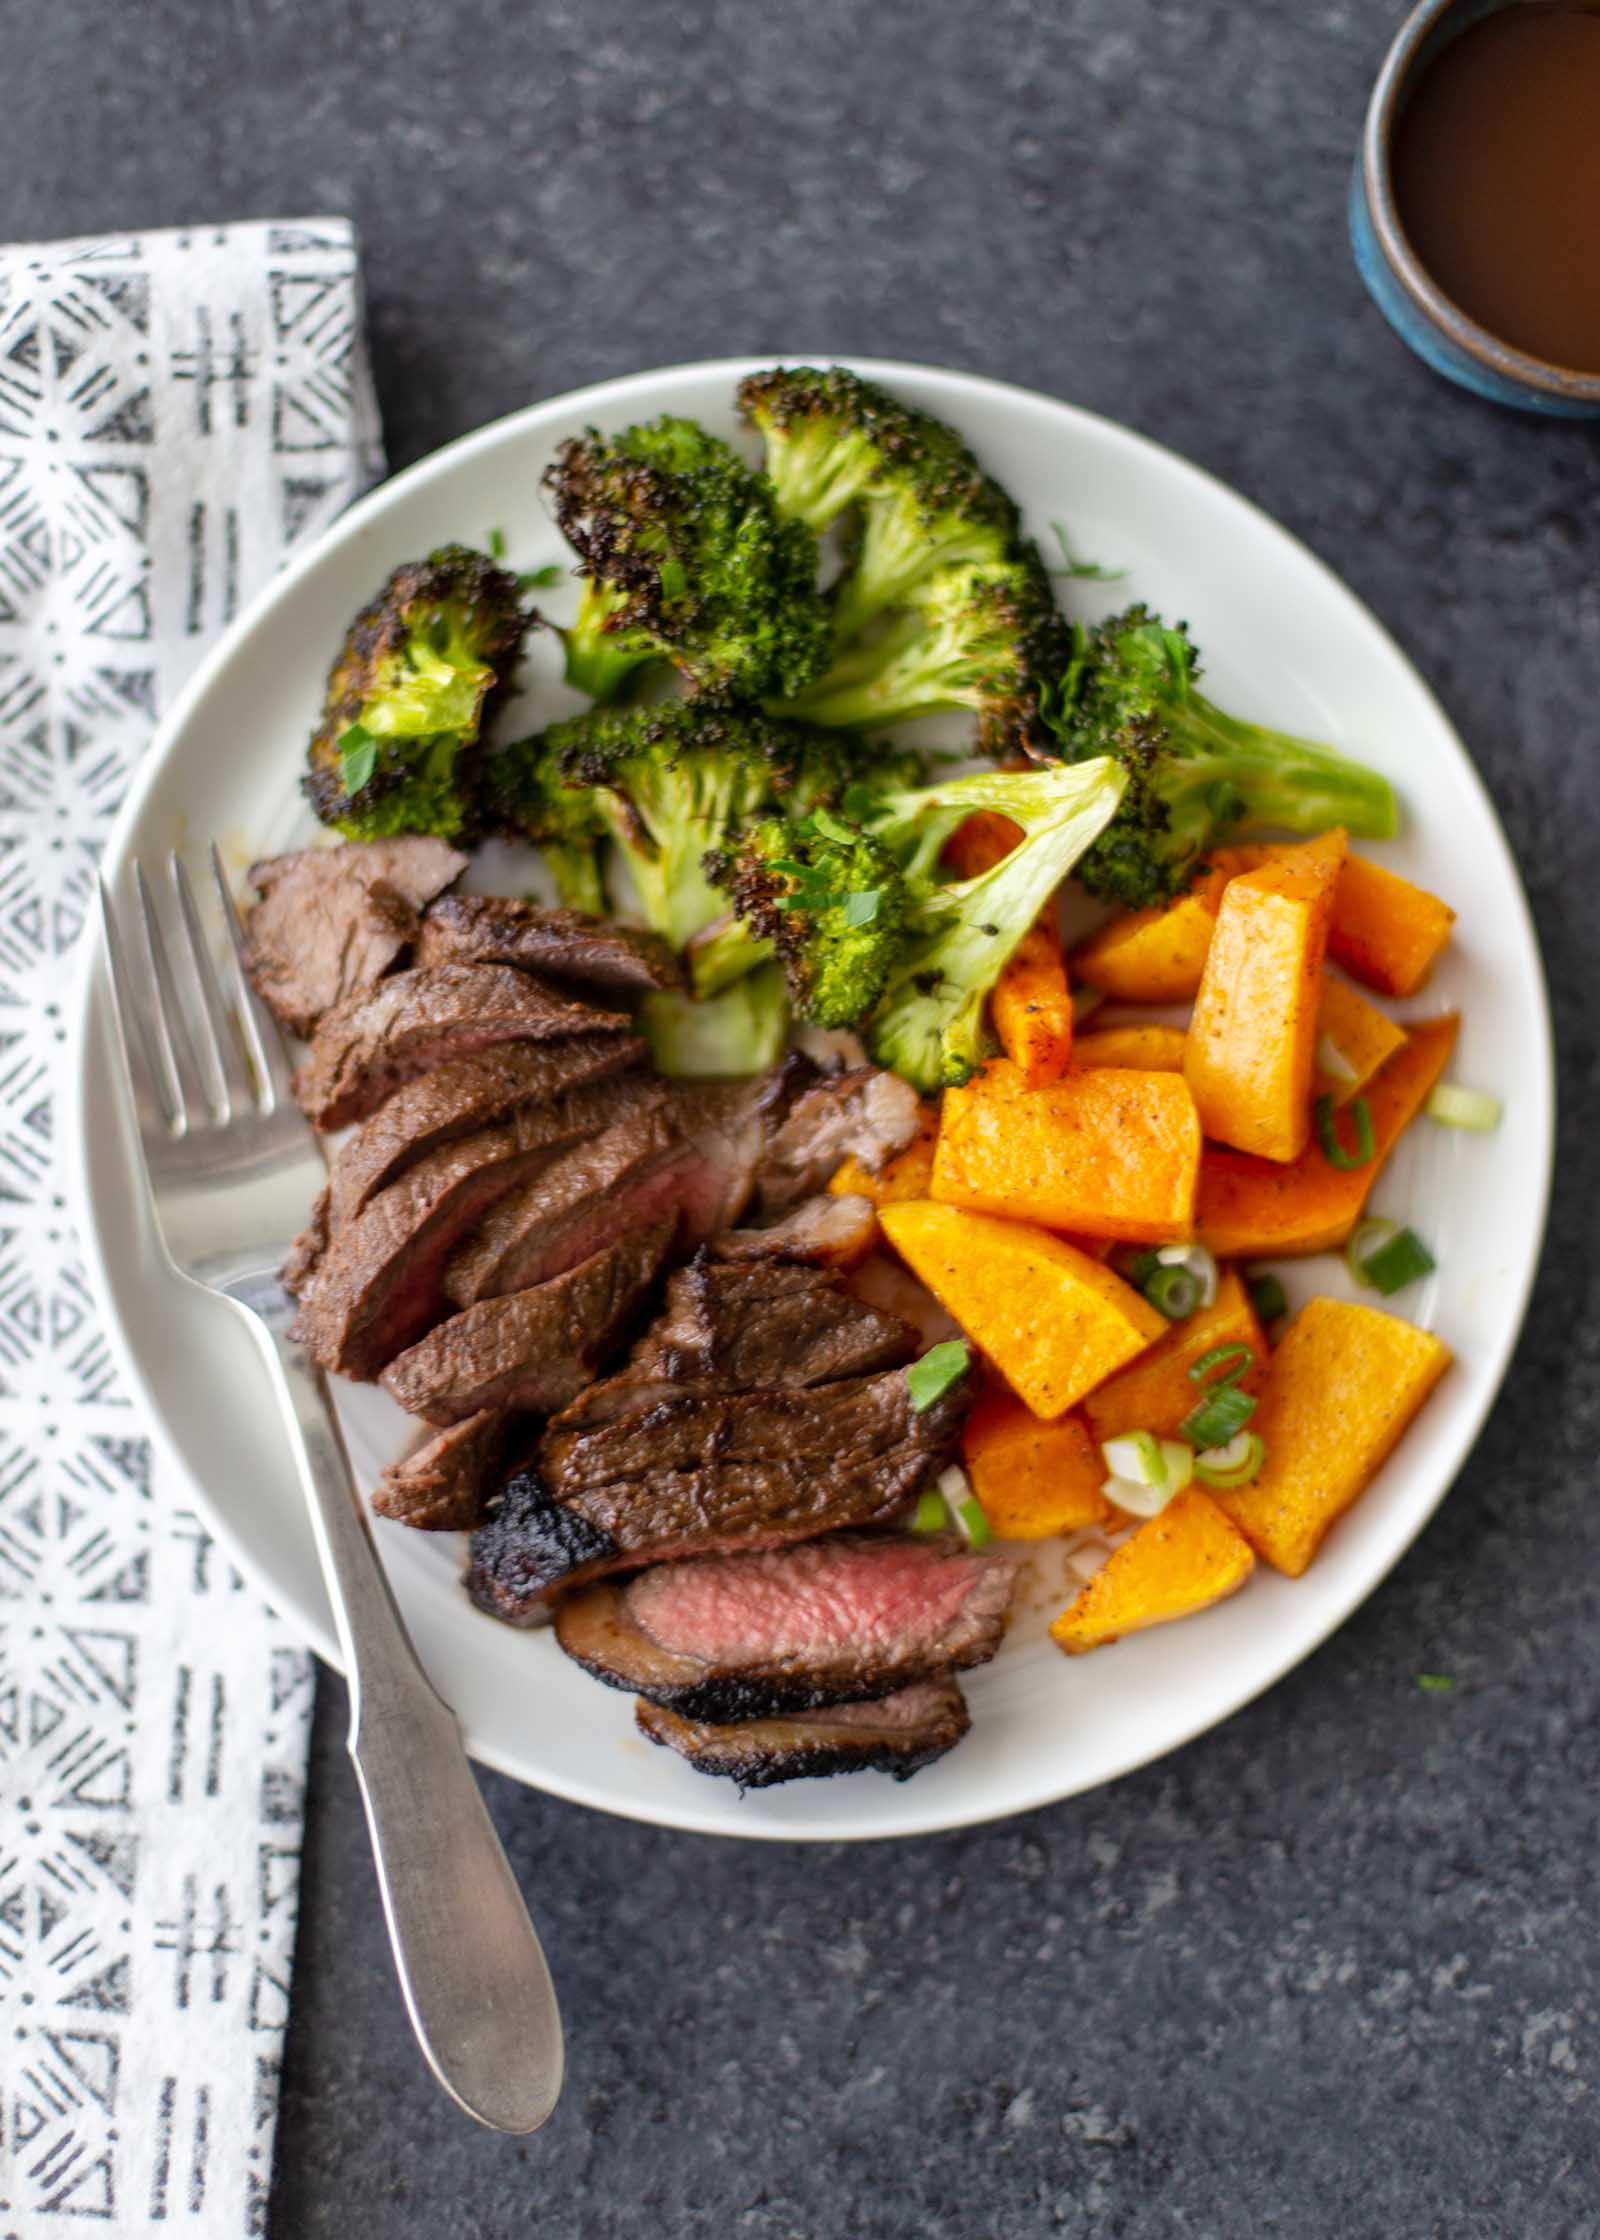 Sliced oven broiled steak on a white plate with seared edges and pink middle. Roasted broccoli and squash are on the plate.